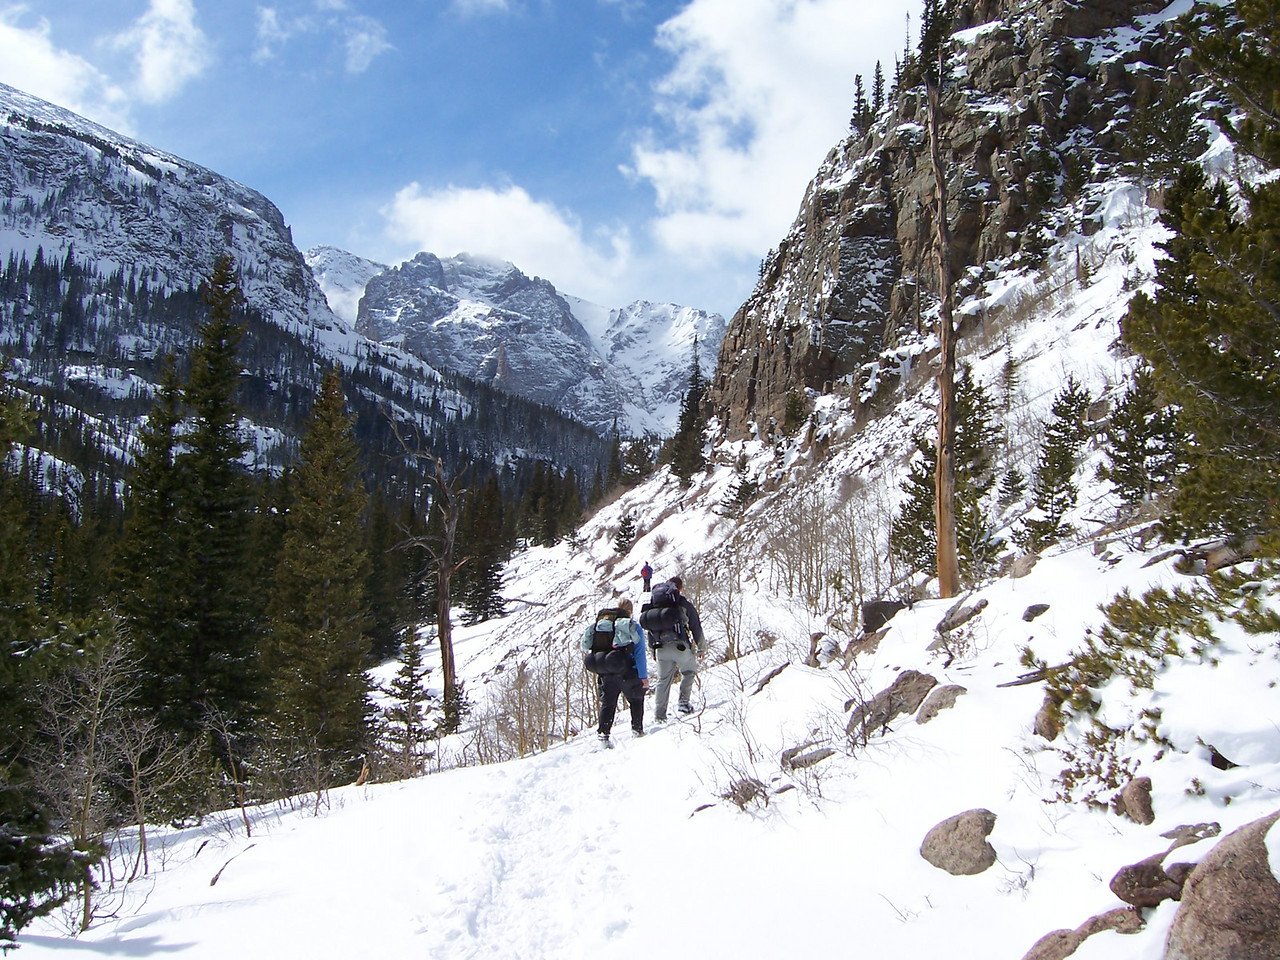 No visit is complete without some camping - Brian & April hike the Glacier Gorge Trail in Rocky Mtn NP.